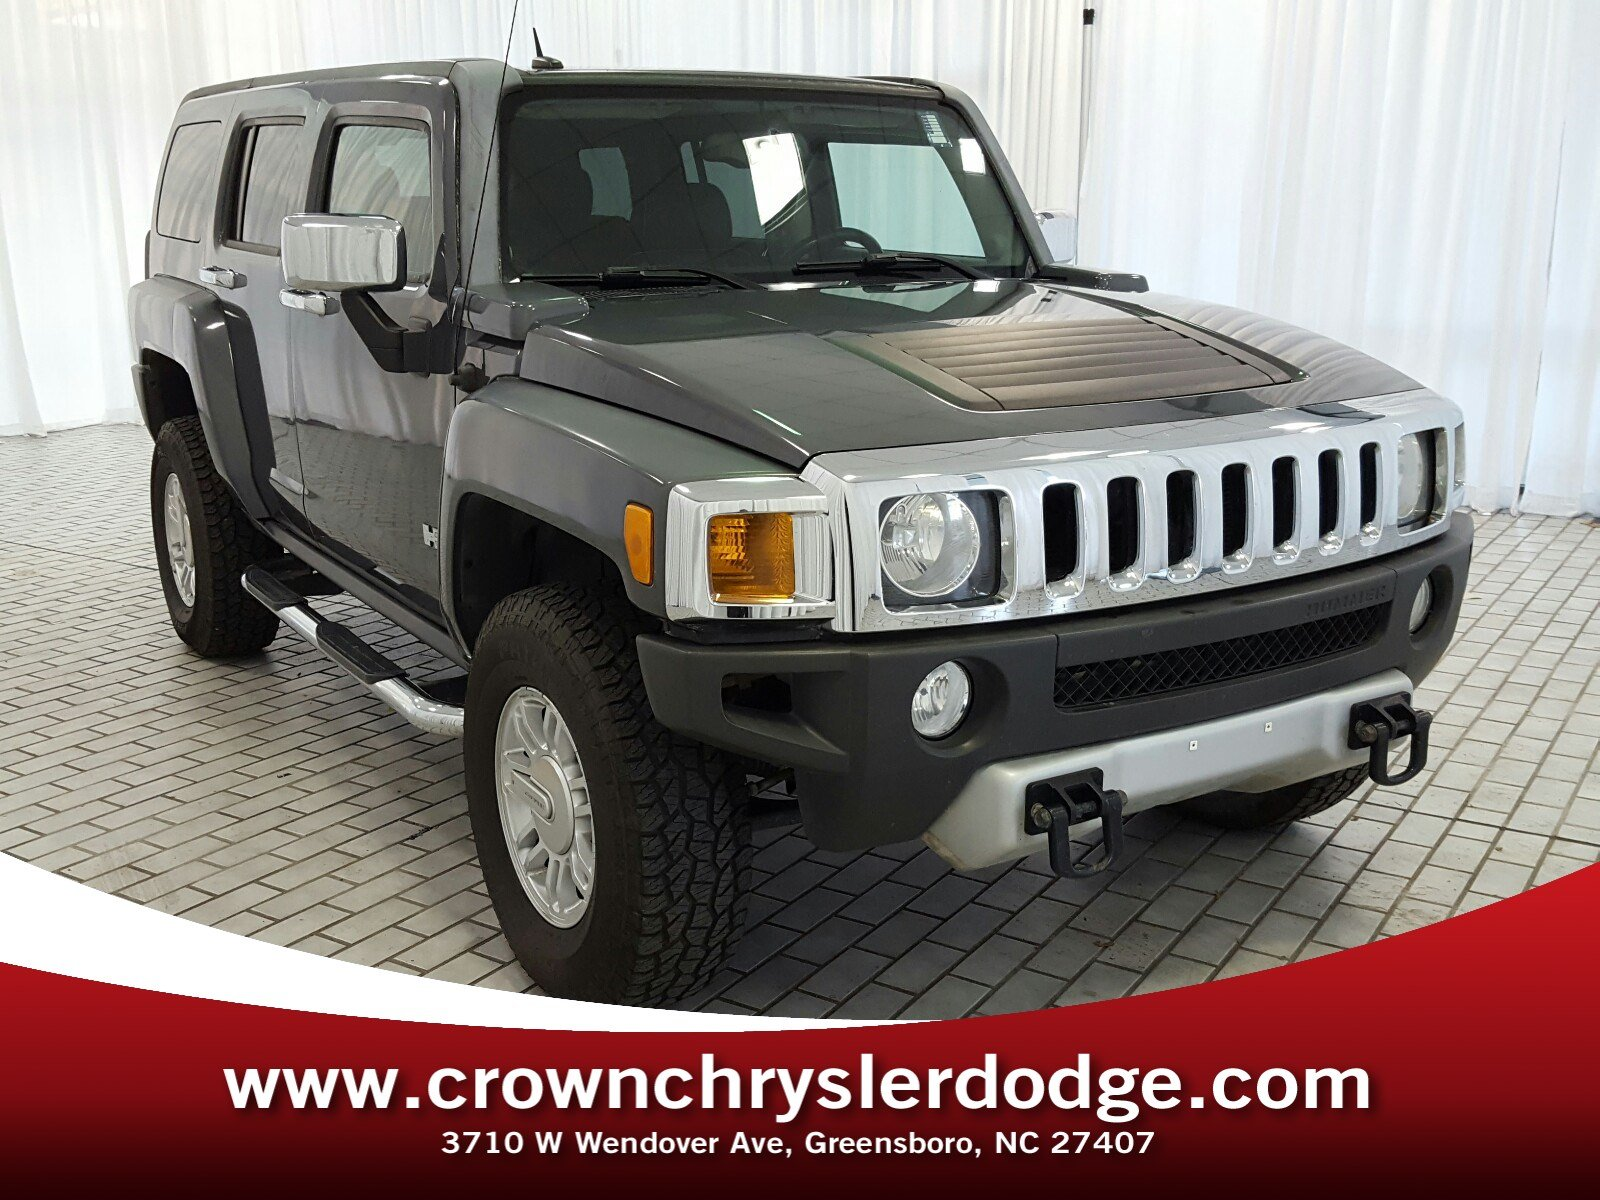 Grey Hummer H3 For Sale ▷ Used Cars Buysellsearch